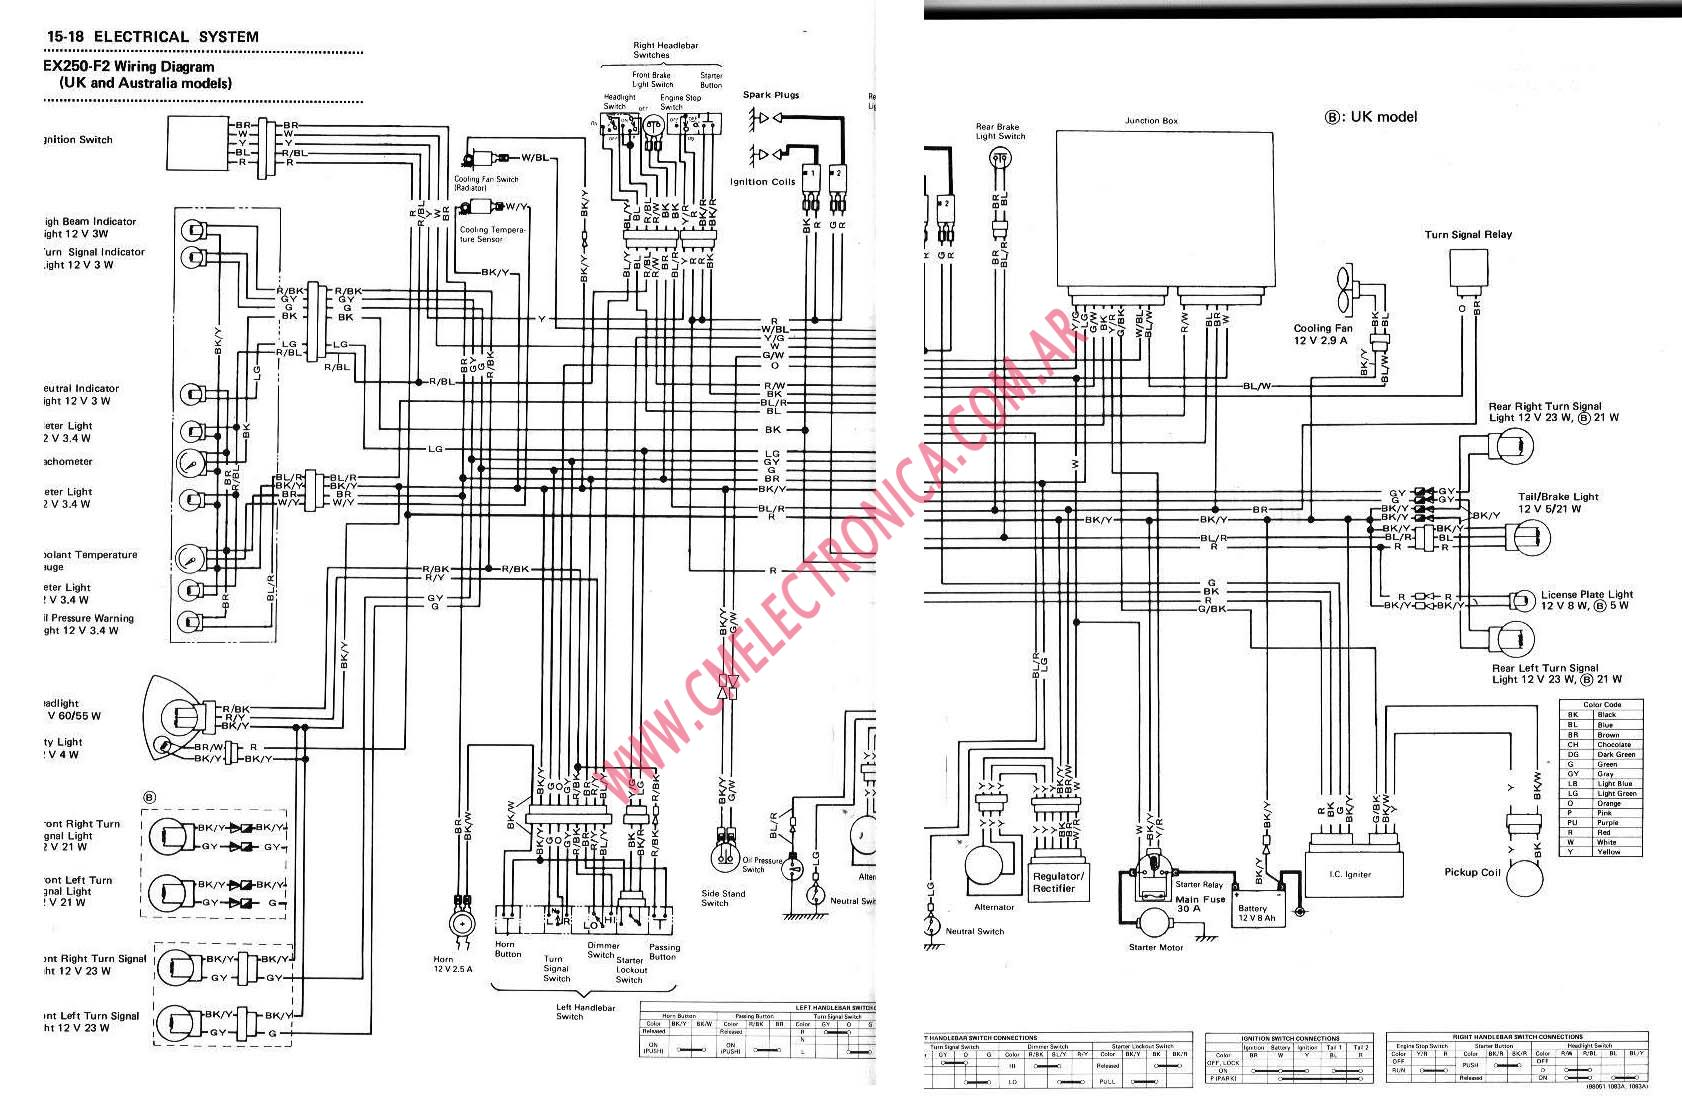 1997 grand marquis fuse box diagram leeson 10 hp motor wiring 1985 mercury imageresizertool com